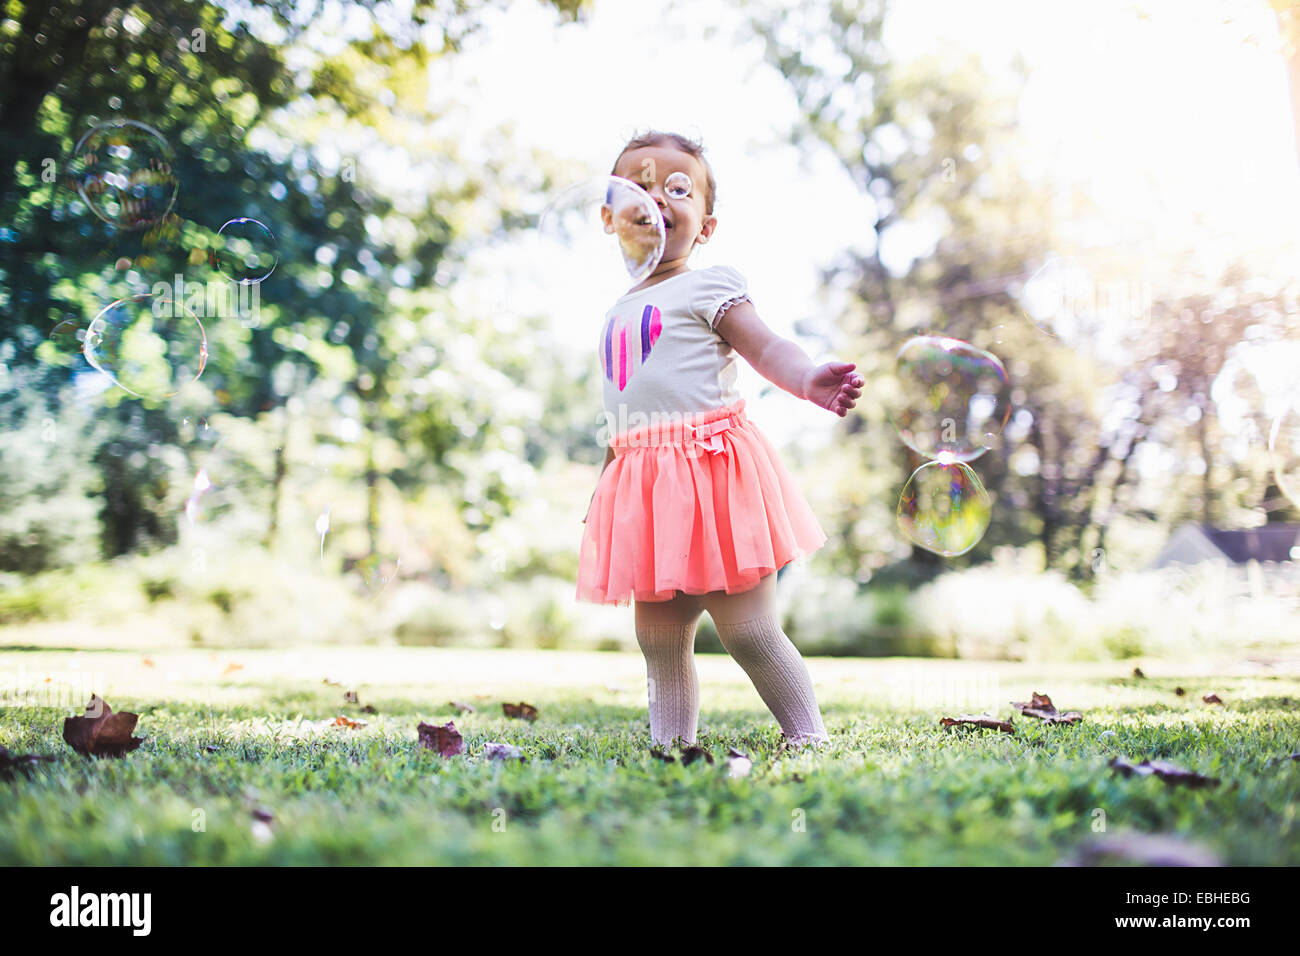 Baby girl playing with bubbles in garden - Stock Image